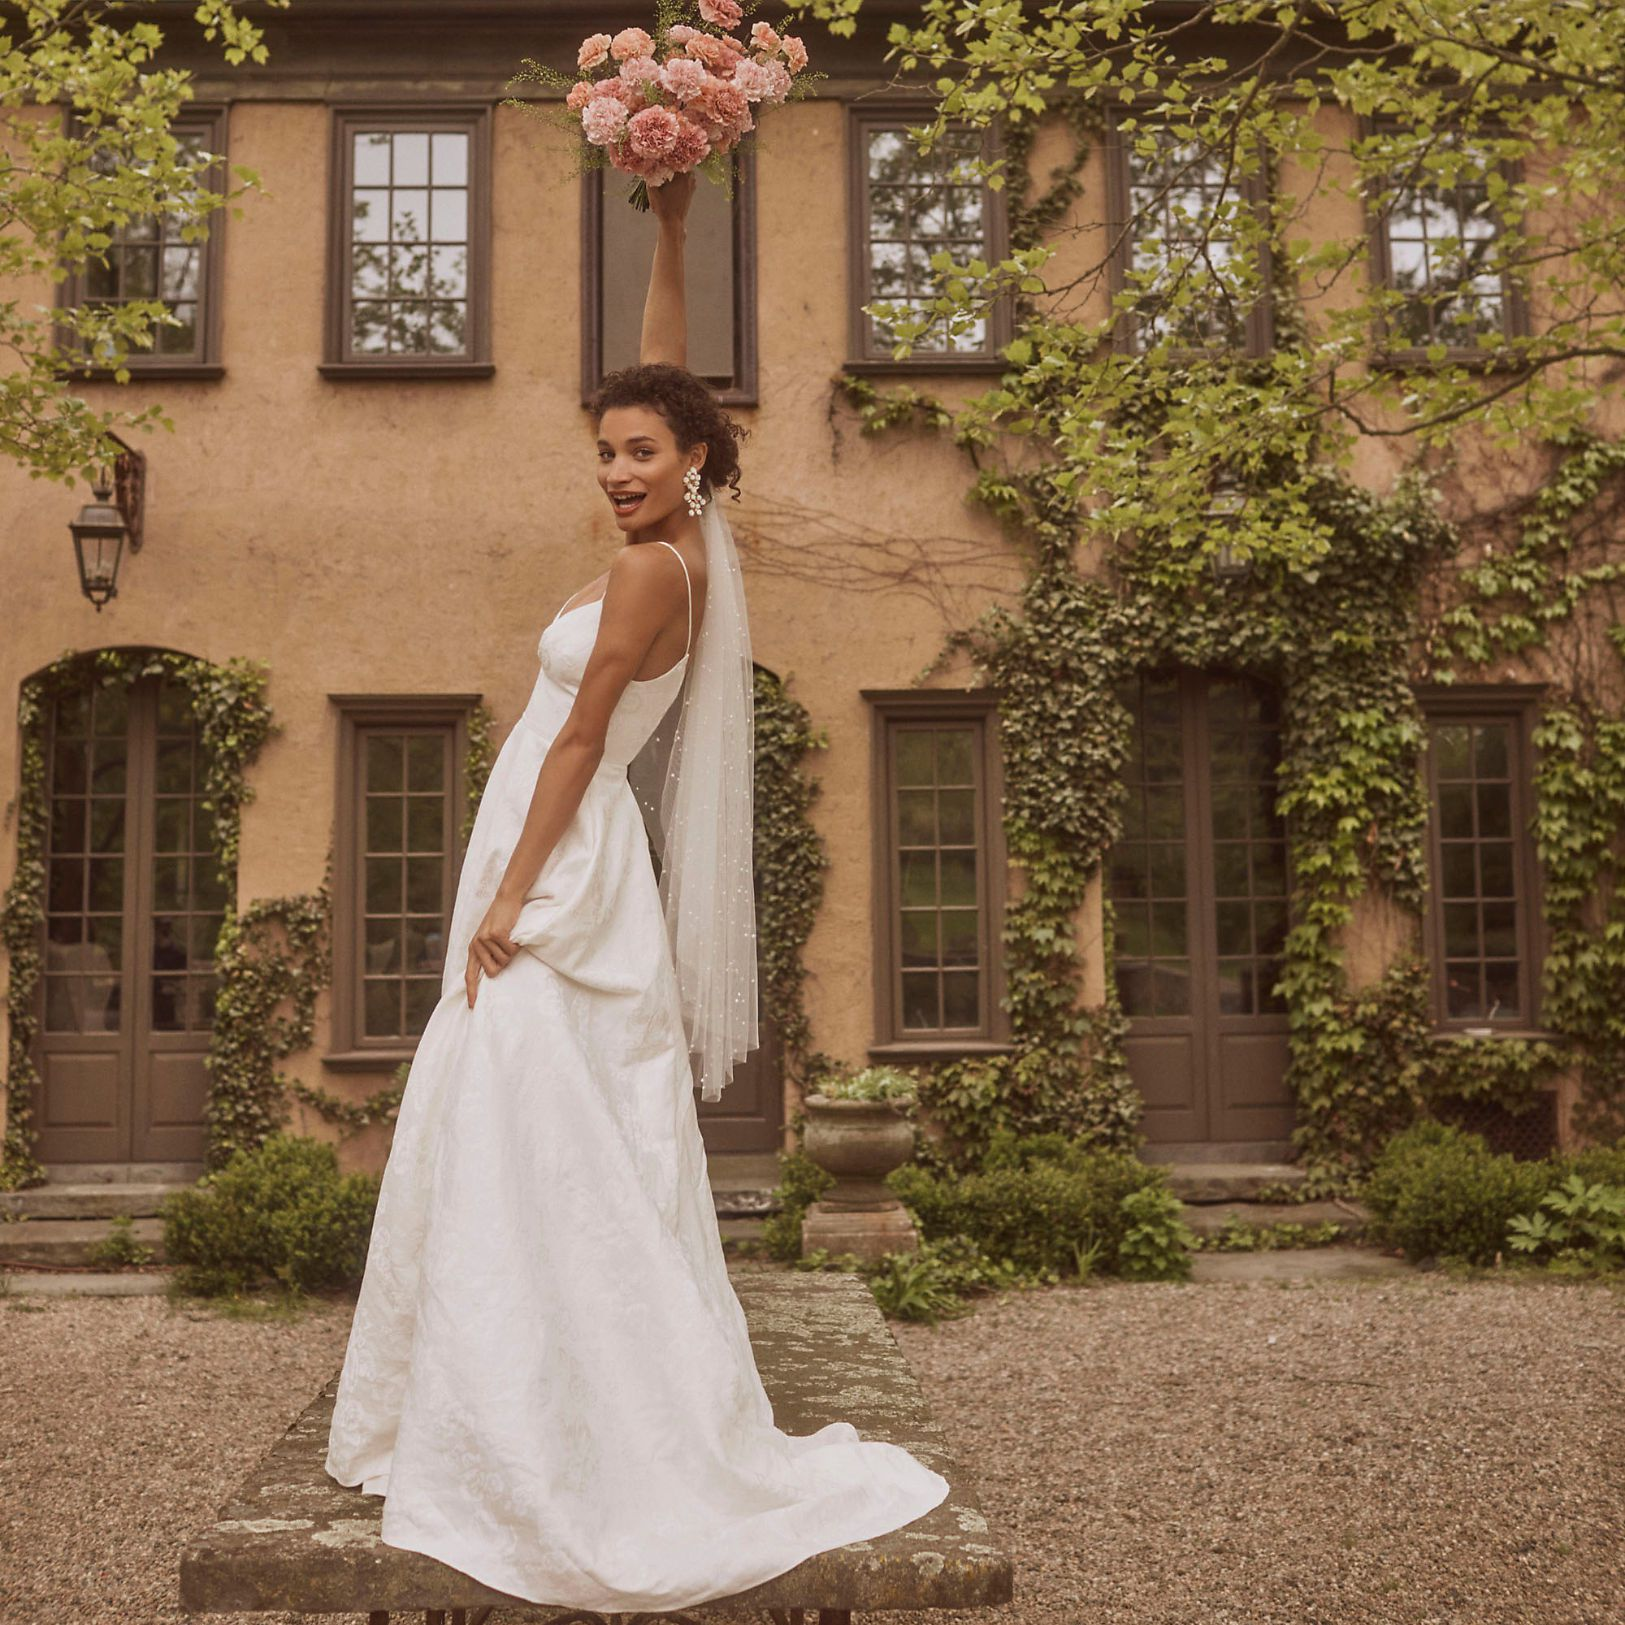 19 Best Places To Buy Wedding Dresses Online Of 2021